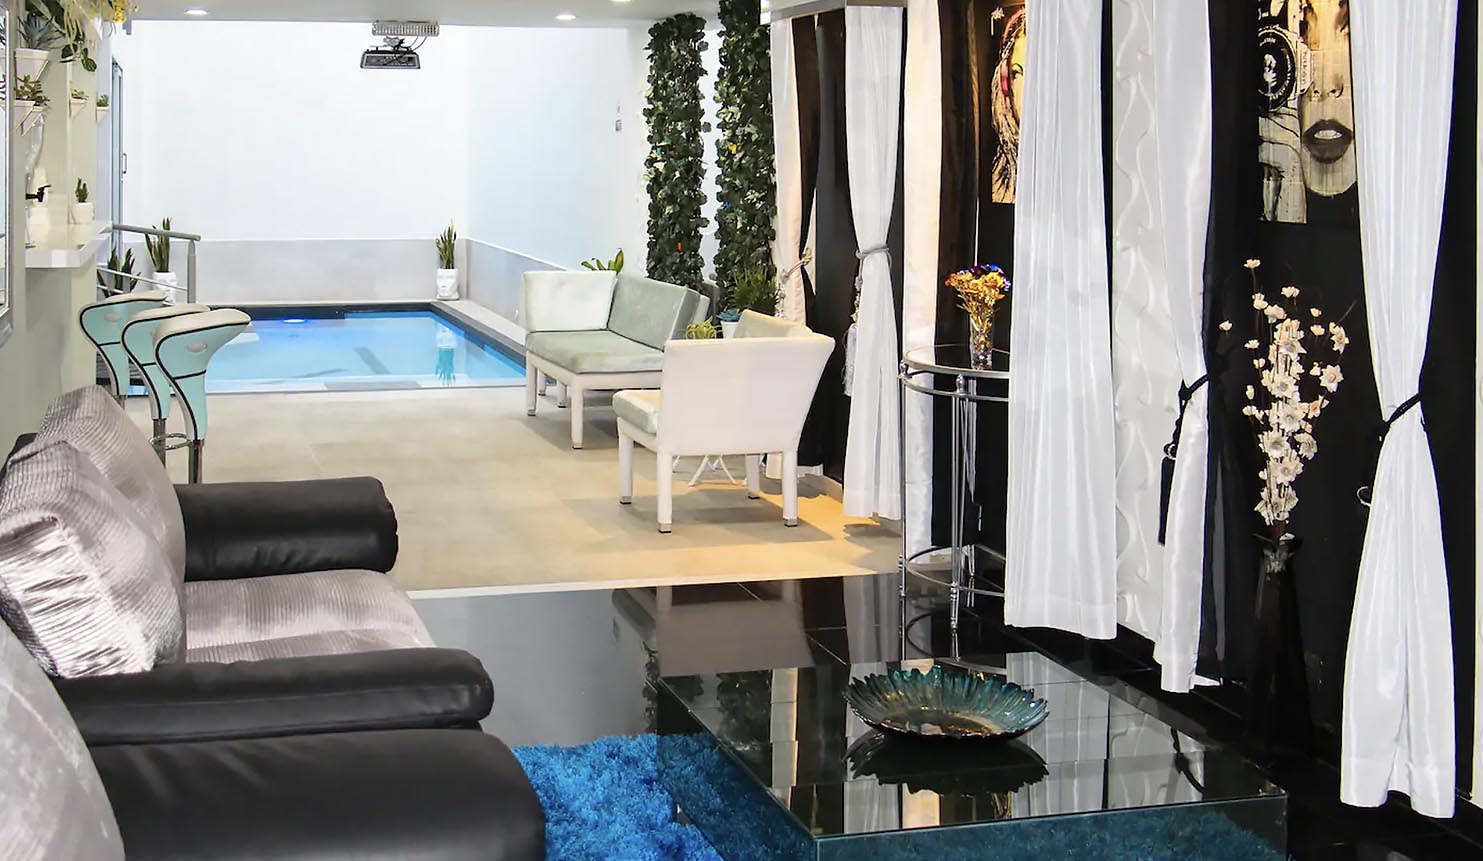 Bachelor Party Accommodations Medellin